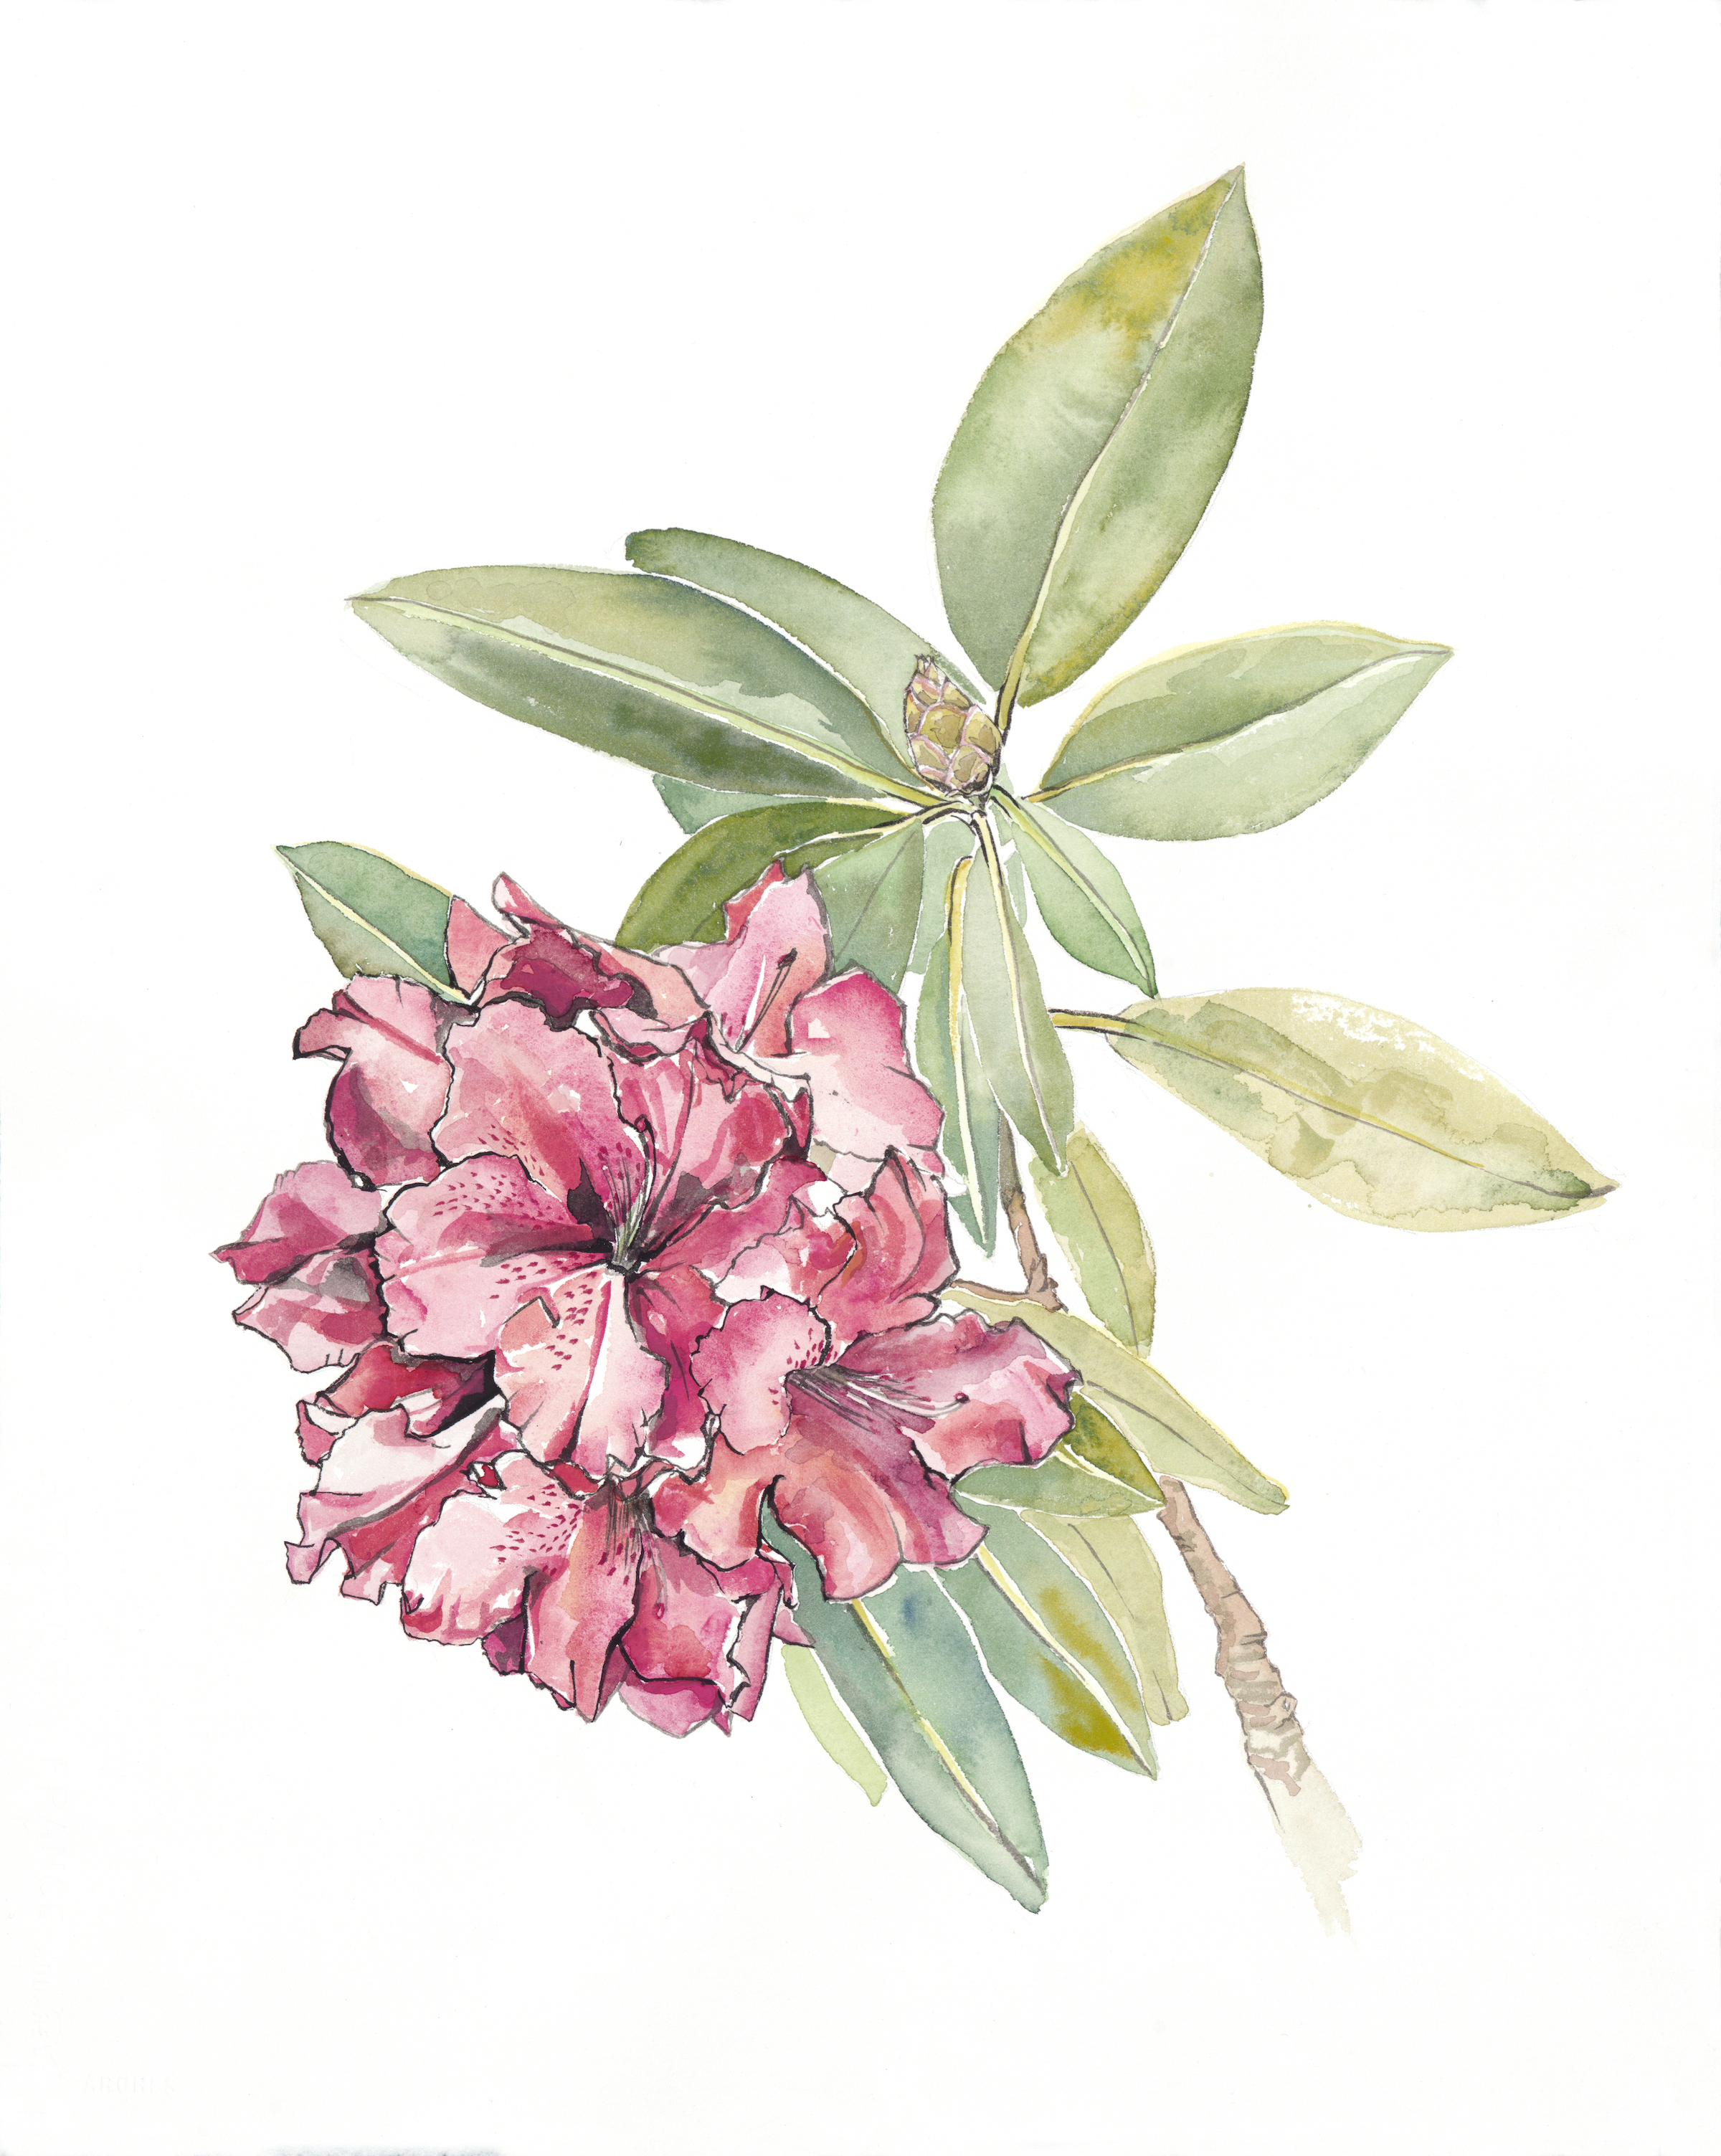 "Rhododendron [16x20"" - $95]  giclee print of an original 16x20"" sumi ink and watercolor painting featuring a front yard peony."